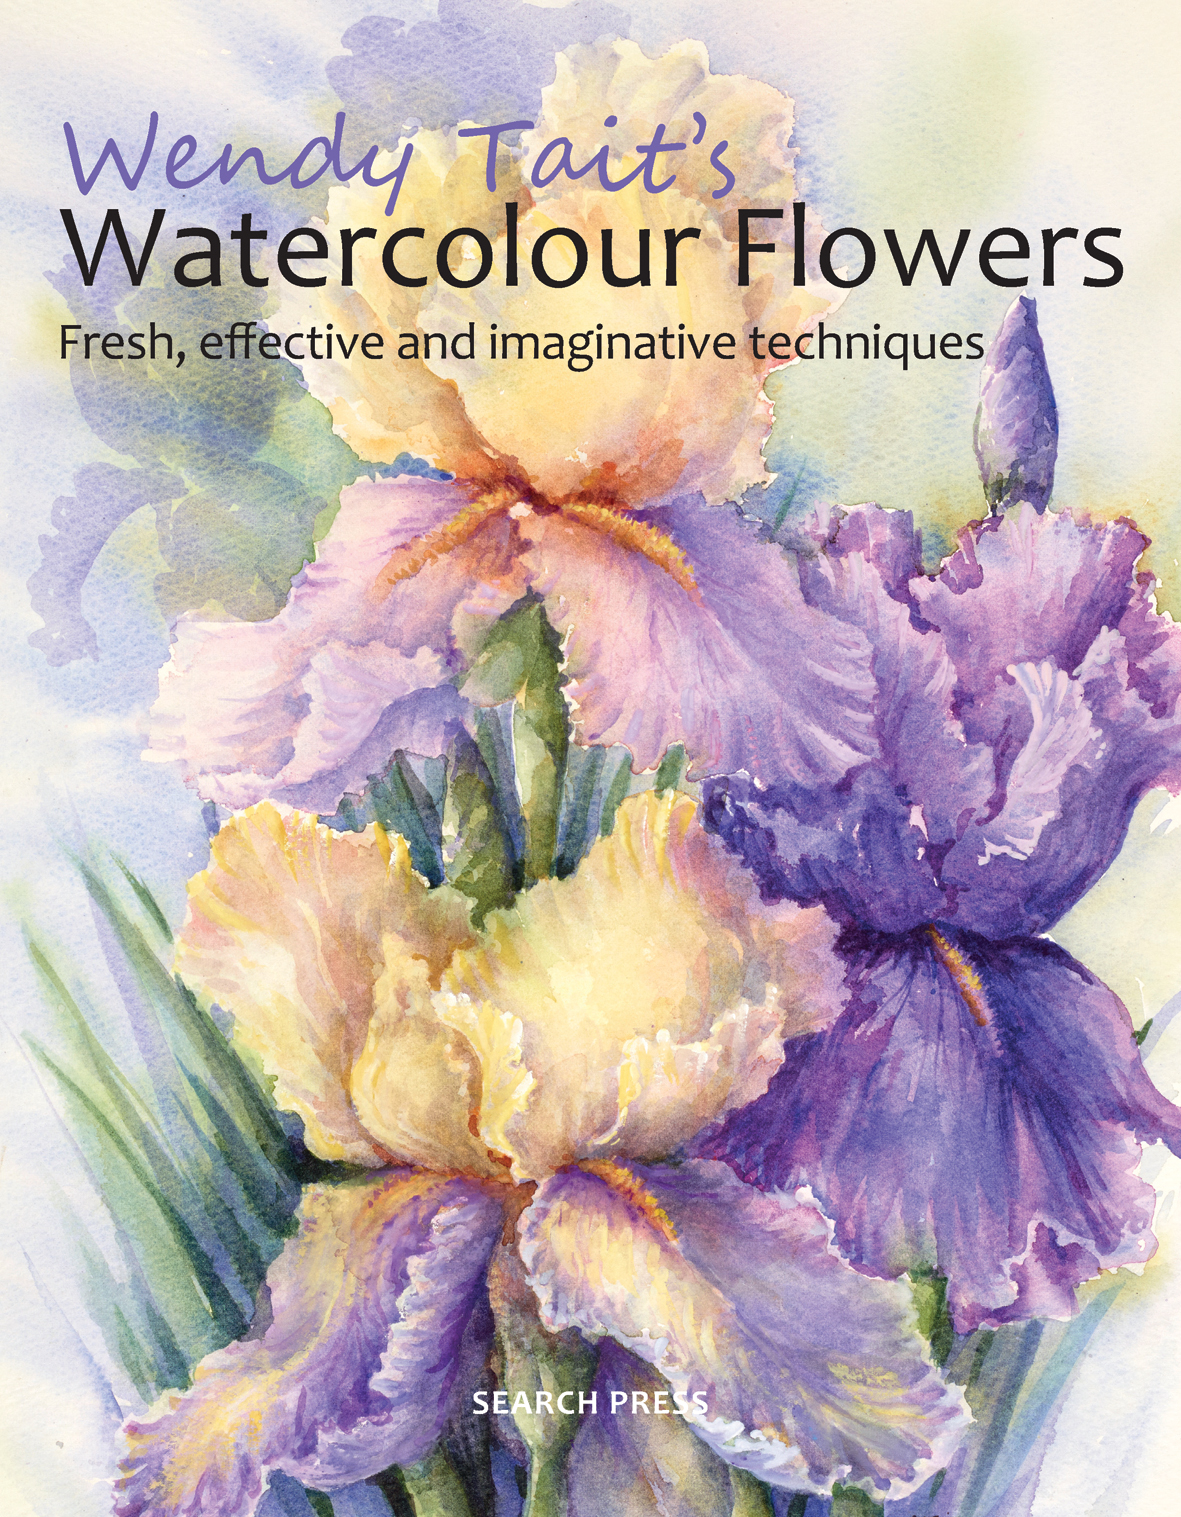 Watercolor books by search press - Download Jacket Image Book Description About The Author Press